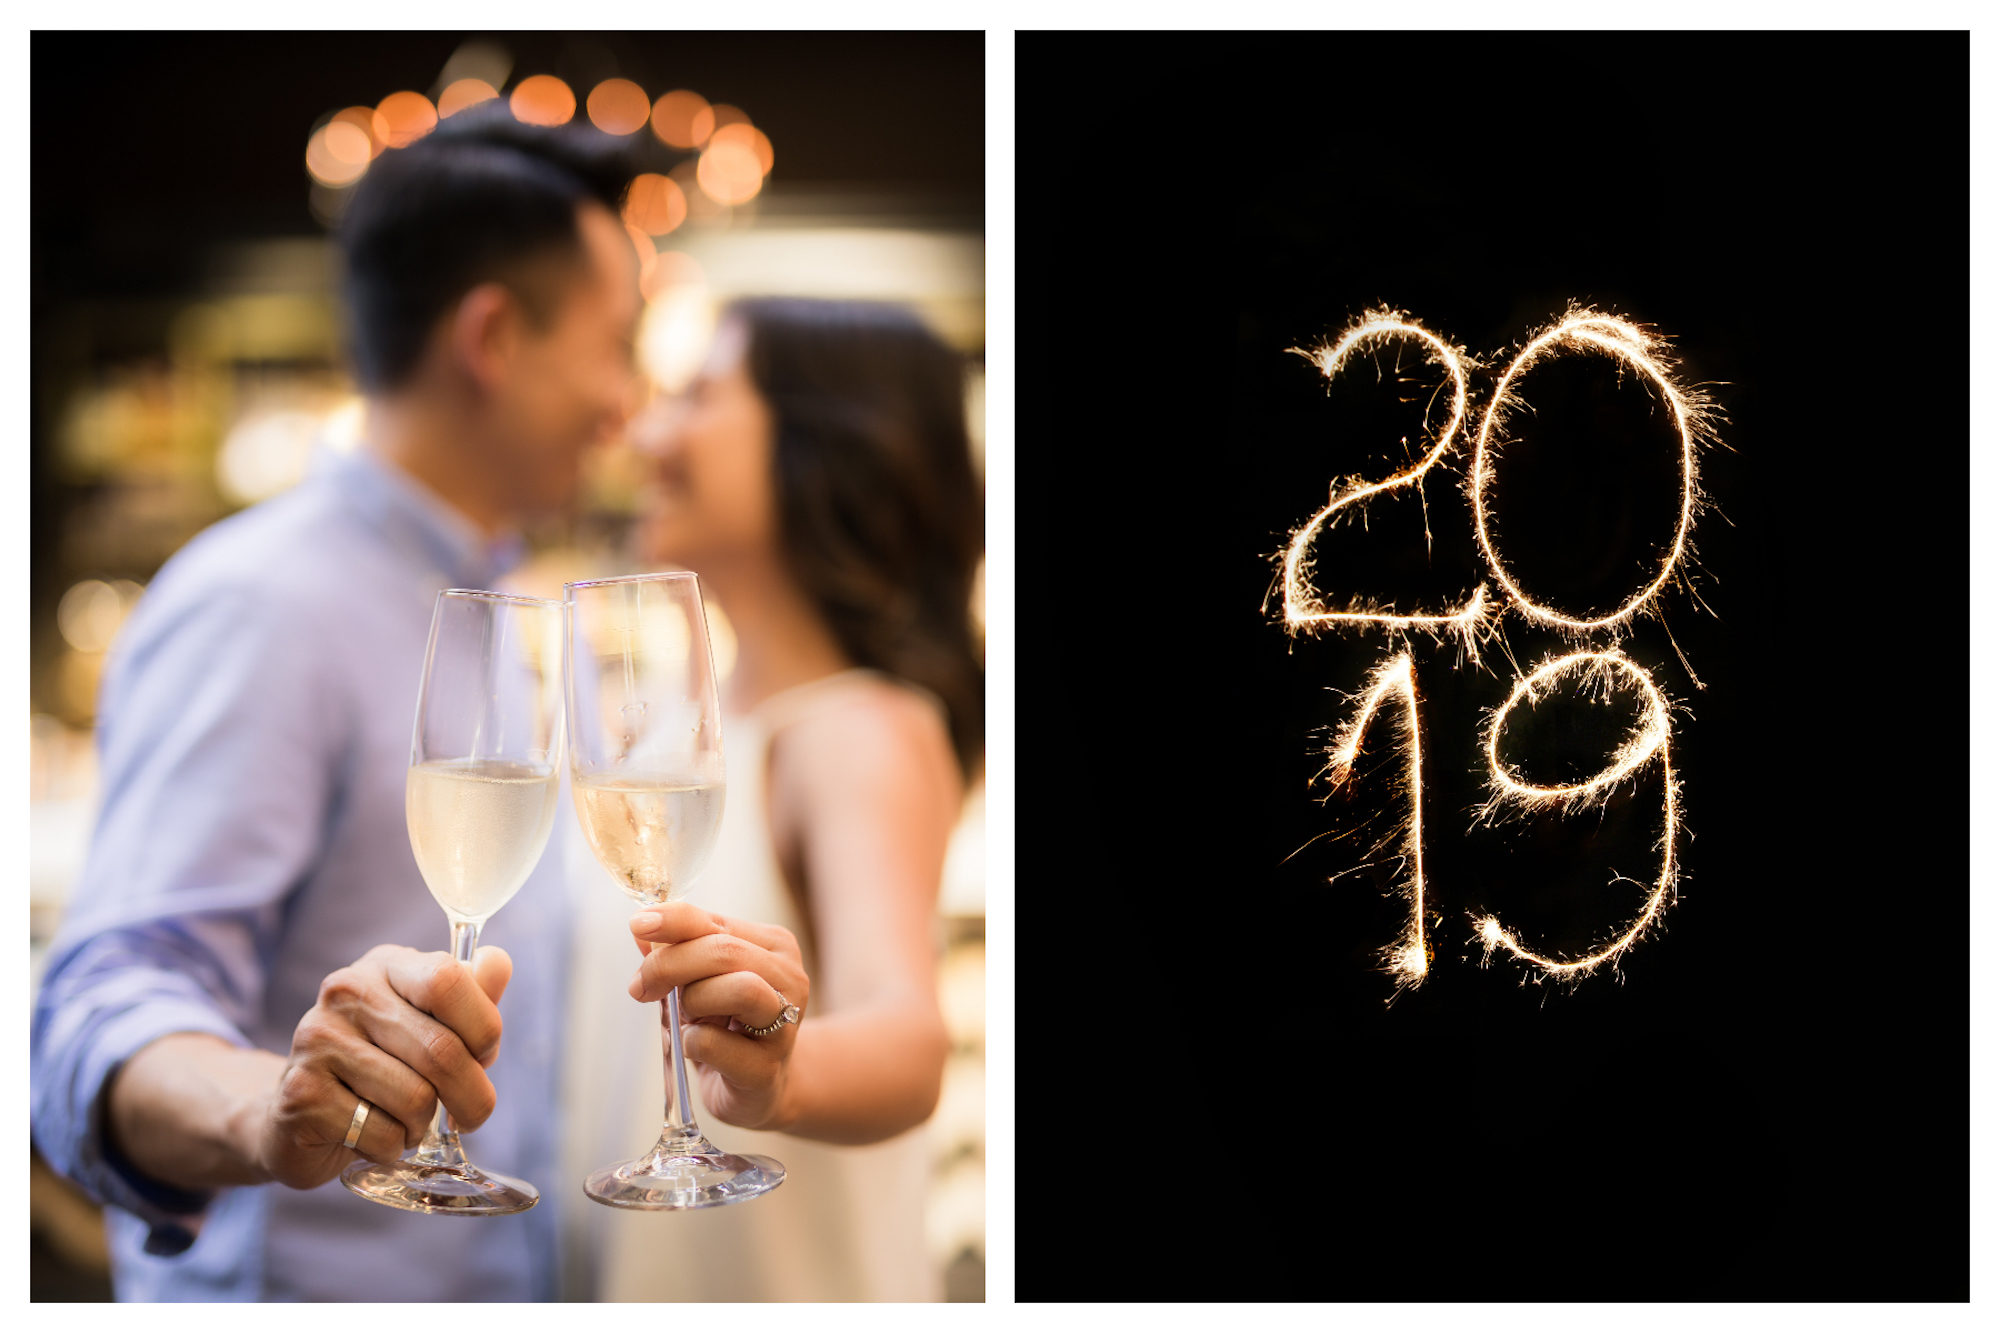 A couple clinking glasses of champagne and about to kiss on New Year's Eve (left). Sparklers that spell out '2019' for New Year's Eve in Paris (right).